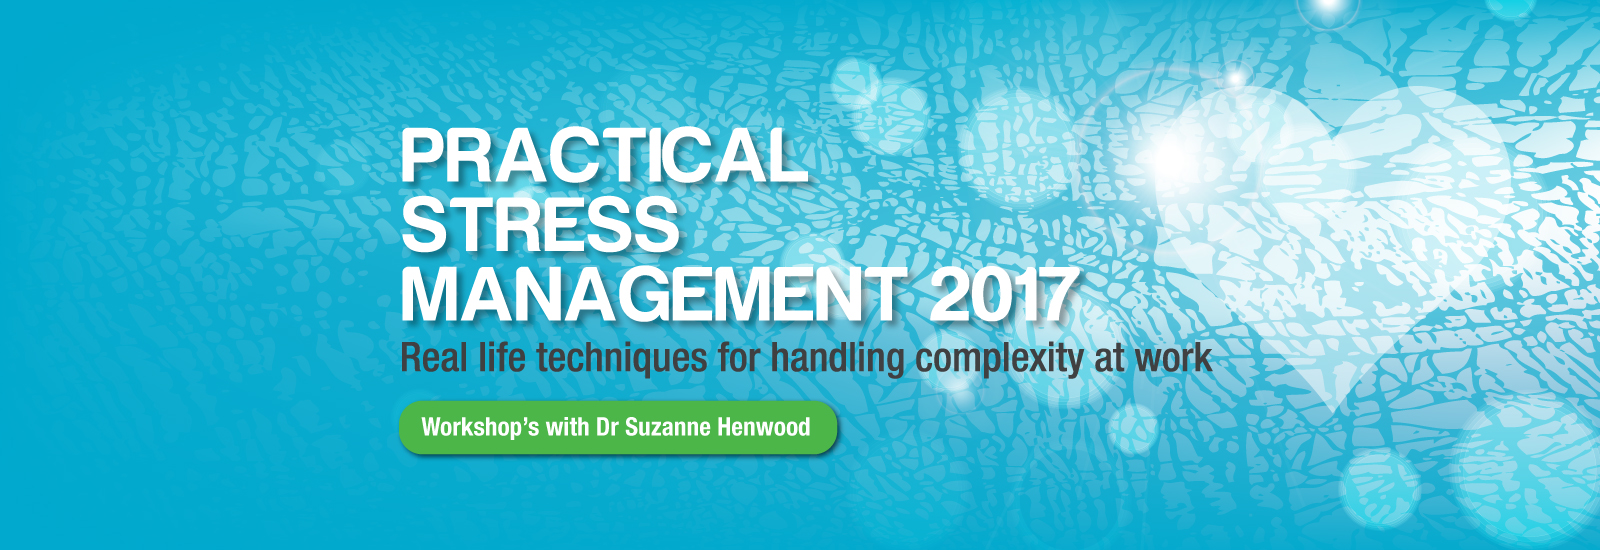 Practical Stress Management 2017